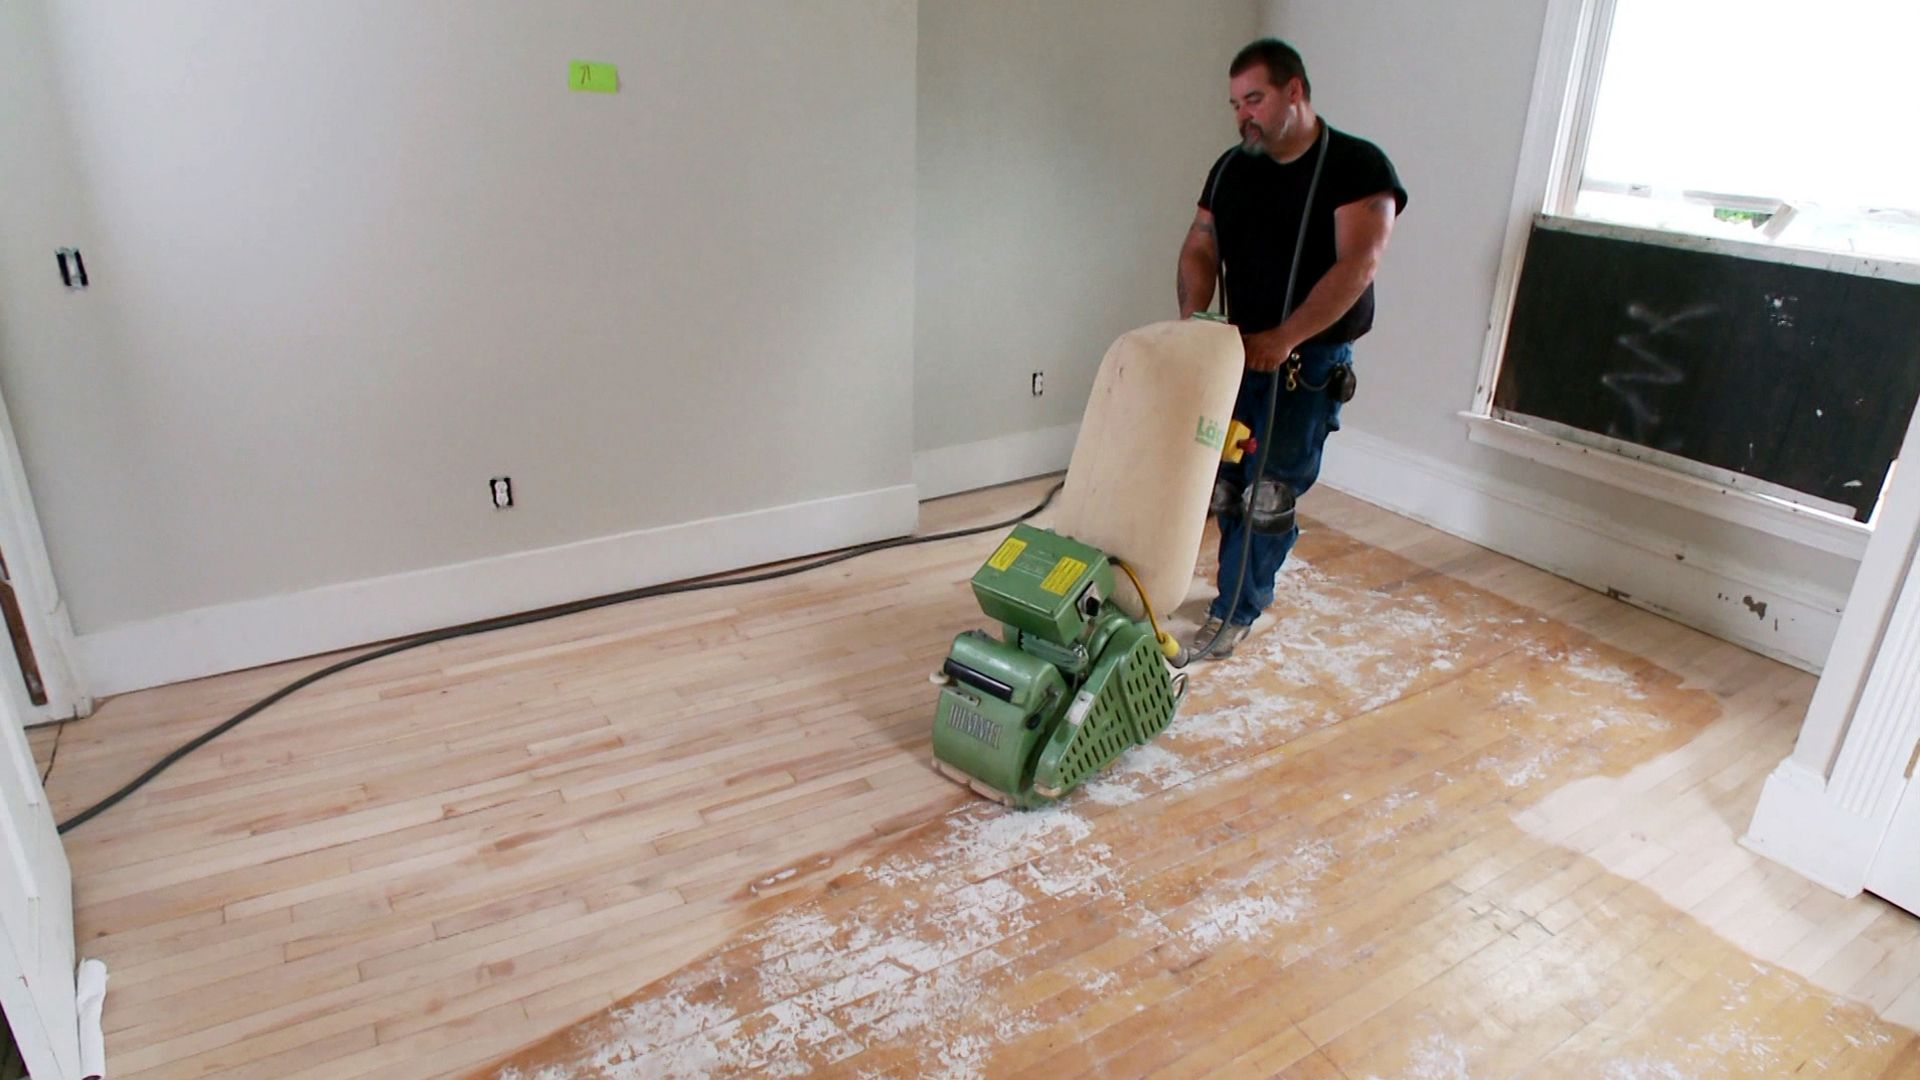 Drill Brushes And Floor Sander How To Refinish A Hardwood Floor Refinishing Hardwood Floors Hardwood Floors Wood Refinishing